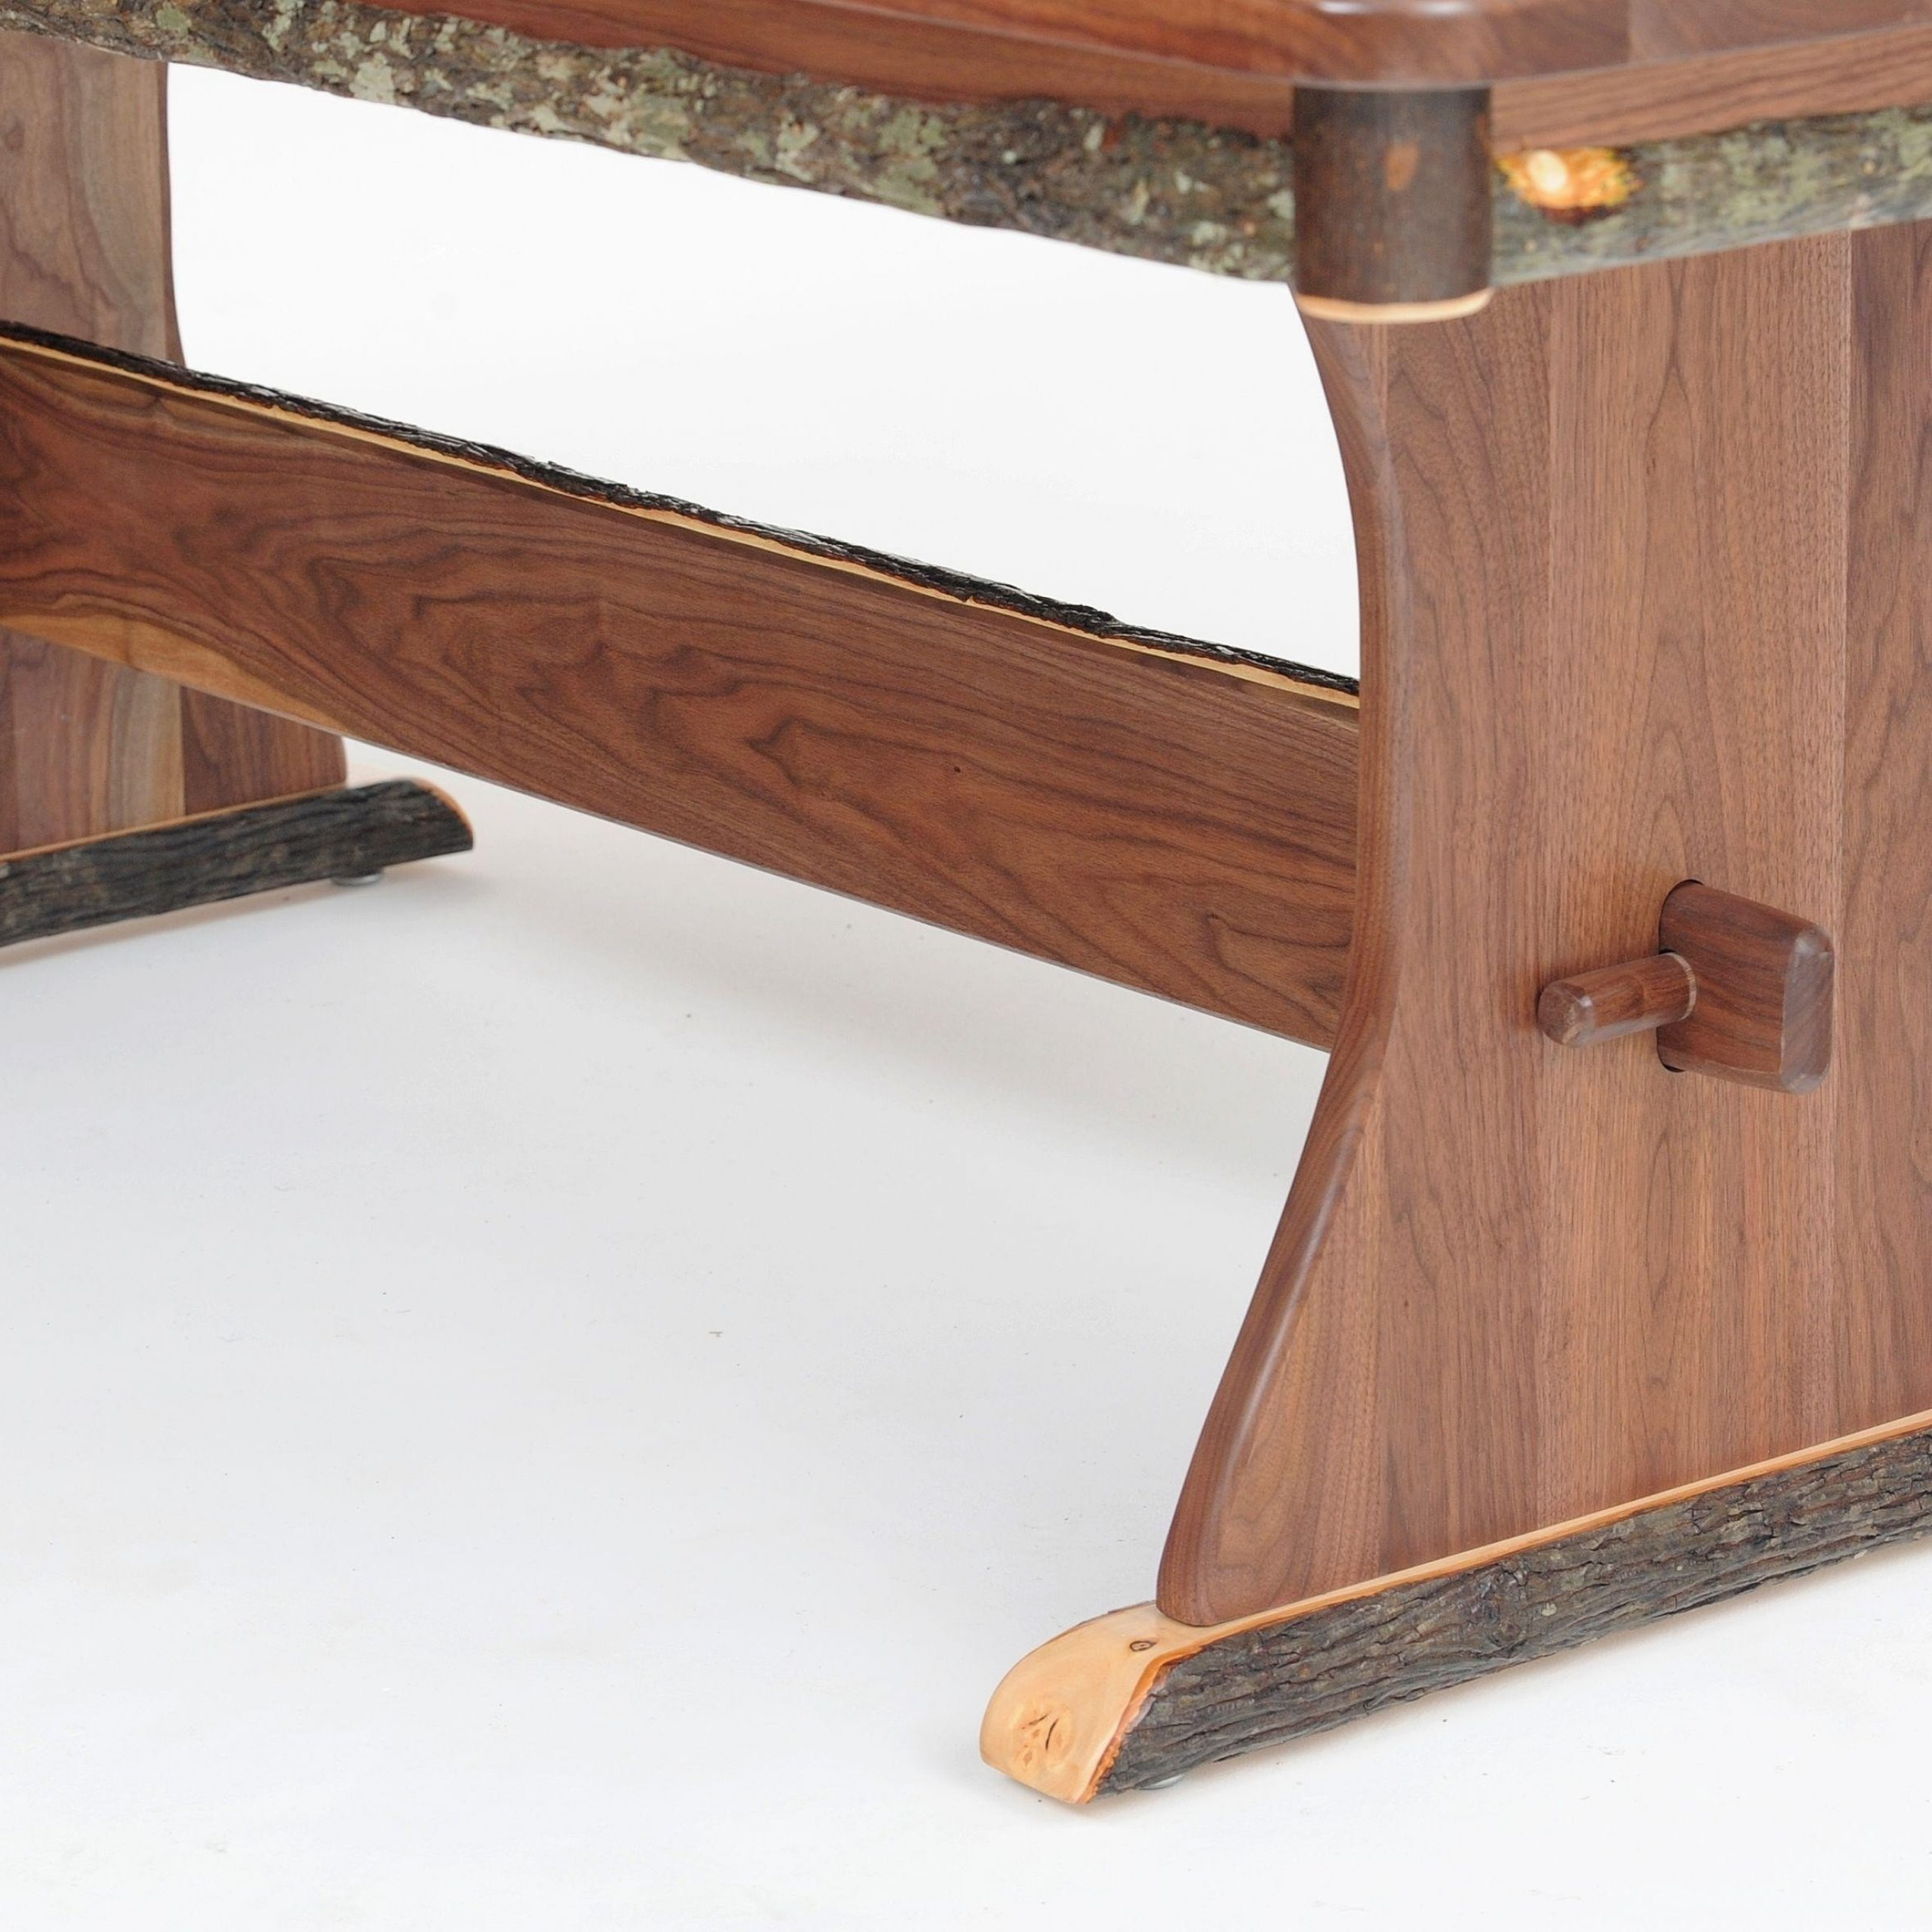 Rustic Trestle Dining Table, Log Furniture, Cabin Dinette Pertaining To Most Up To Date Kara Trestle Dining Tables (View 13 of 15)